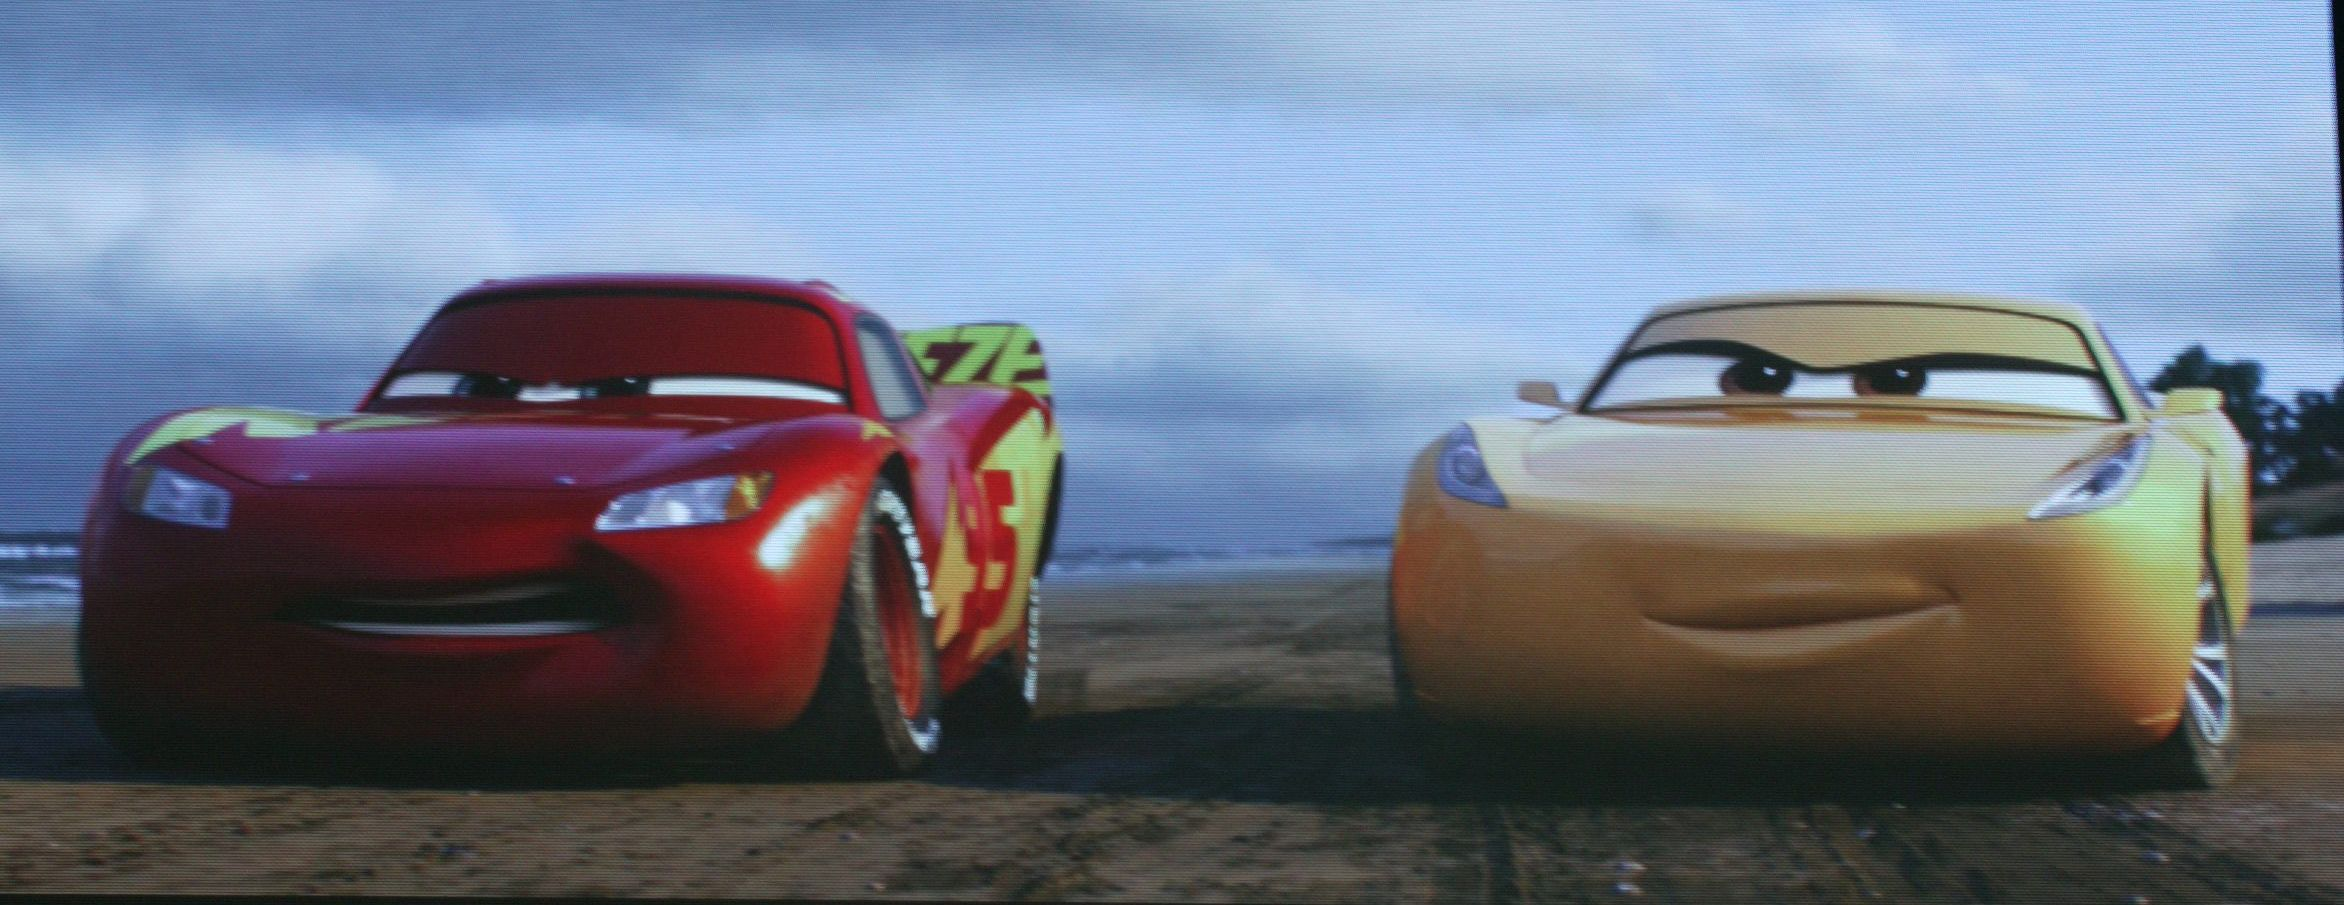 Lightning Mcqueen And Cruz Ramirez From Cars 3 Pixar Cars